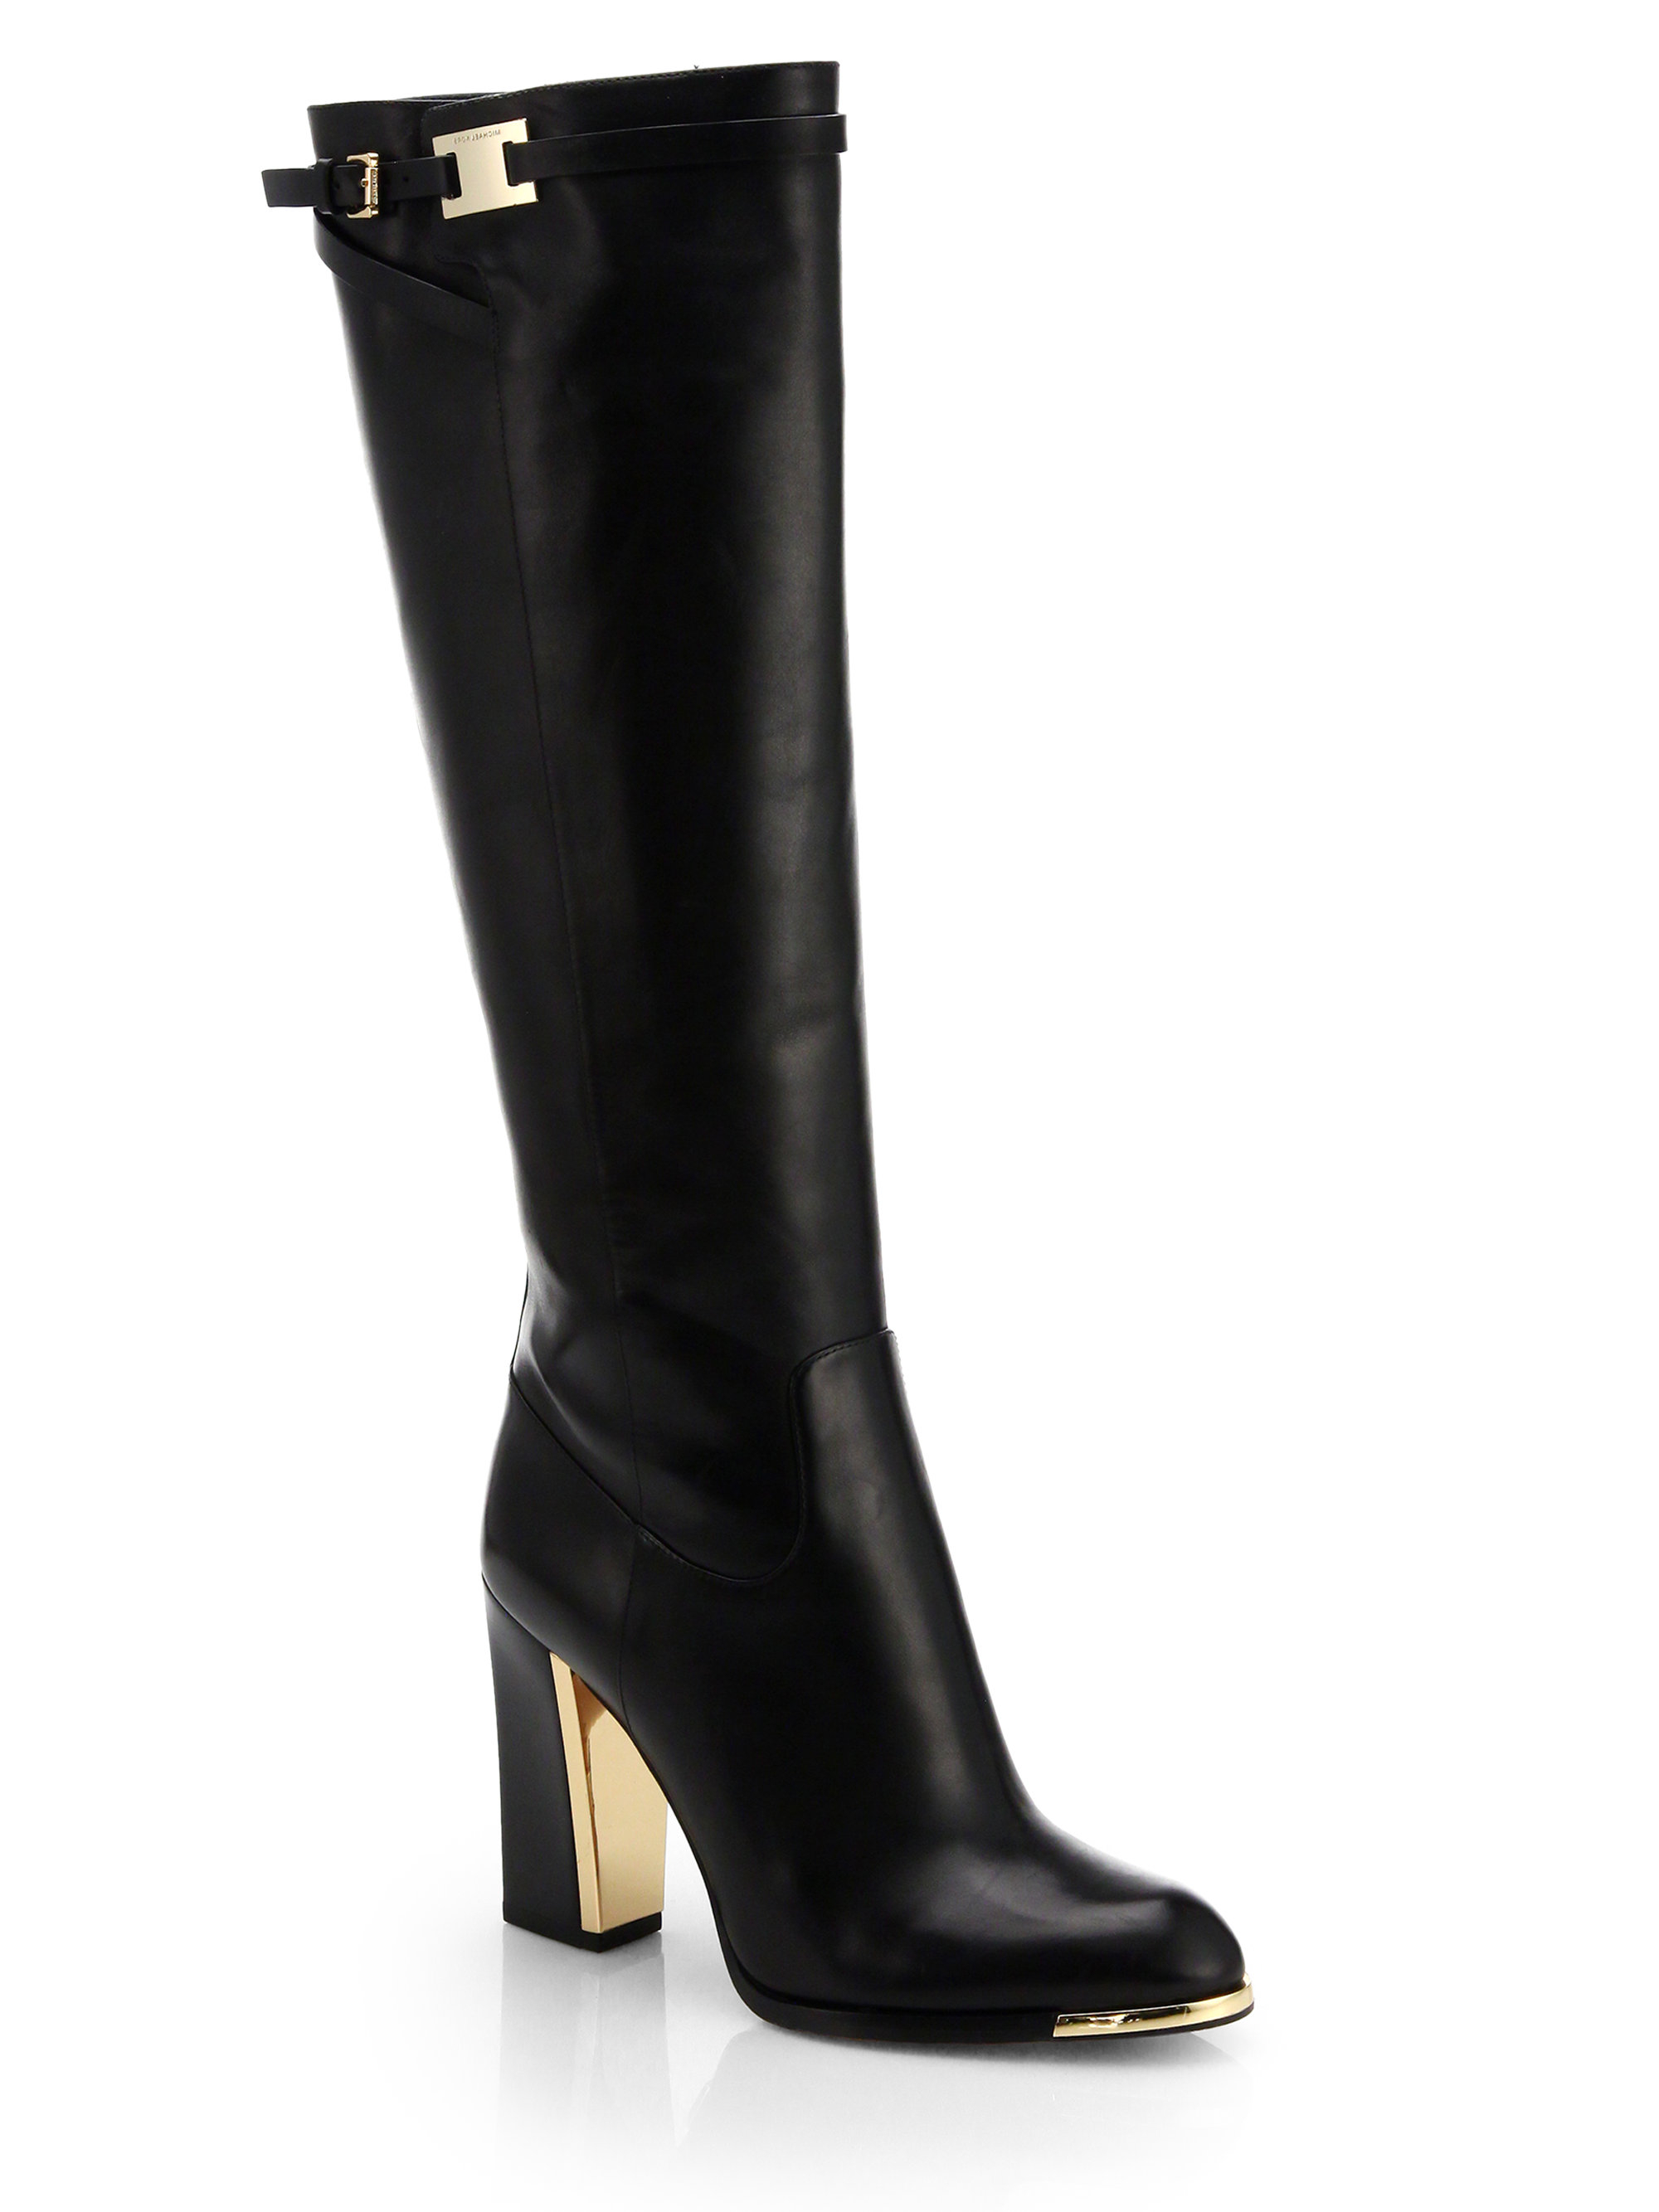 Lyst Michael Kors Julie Leather Knee High Boots In Black